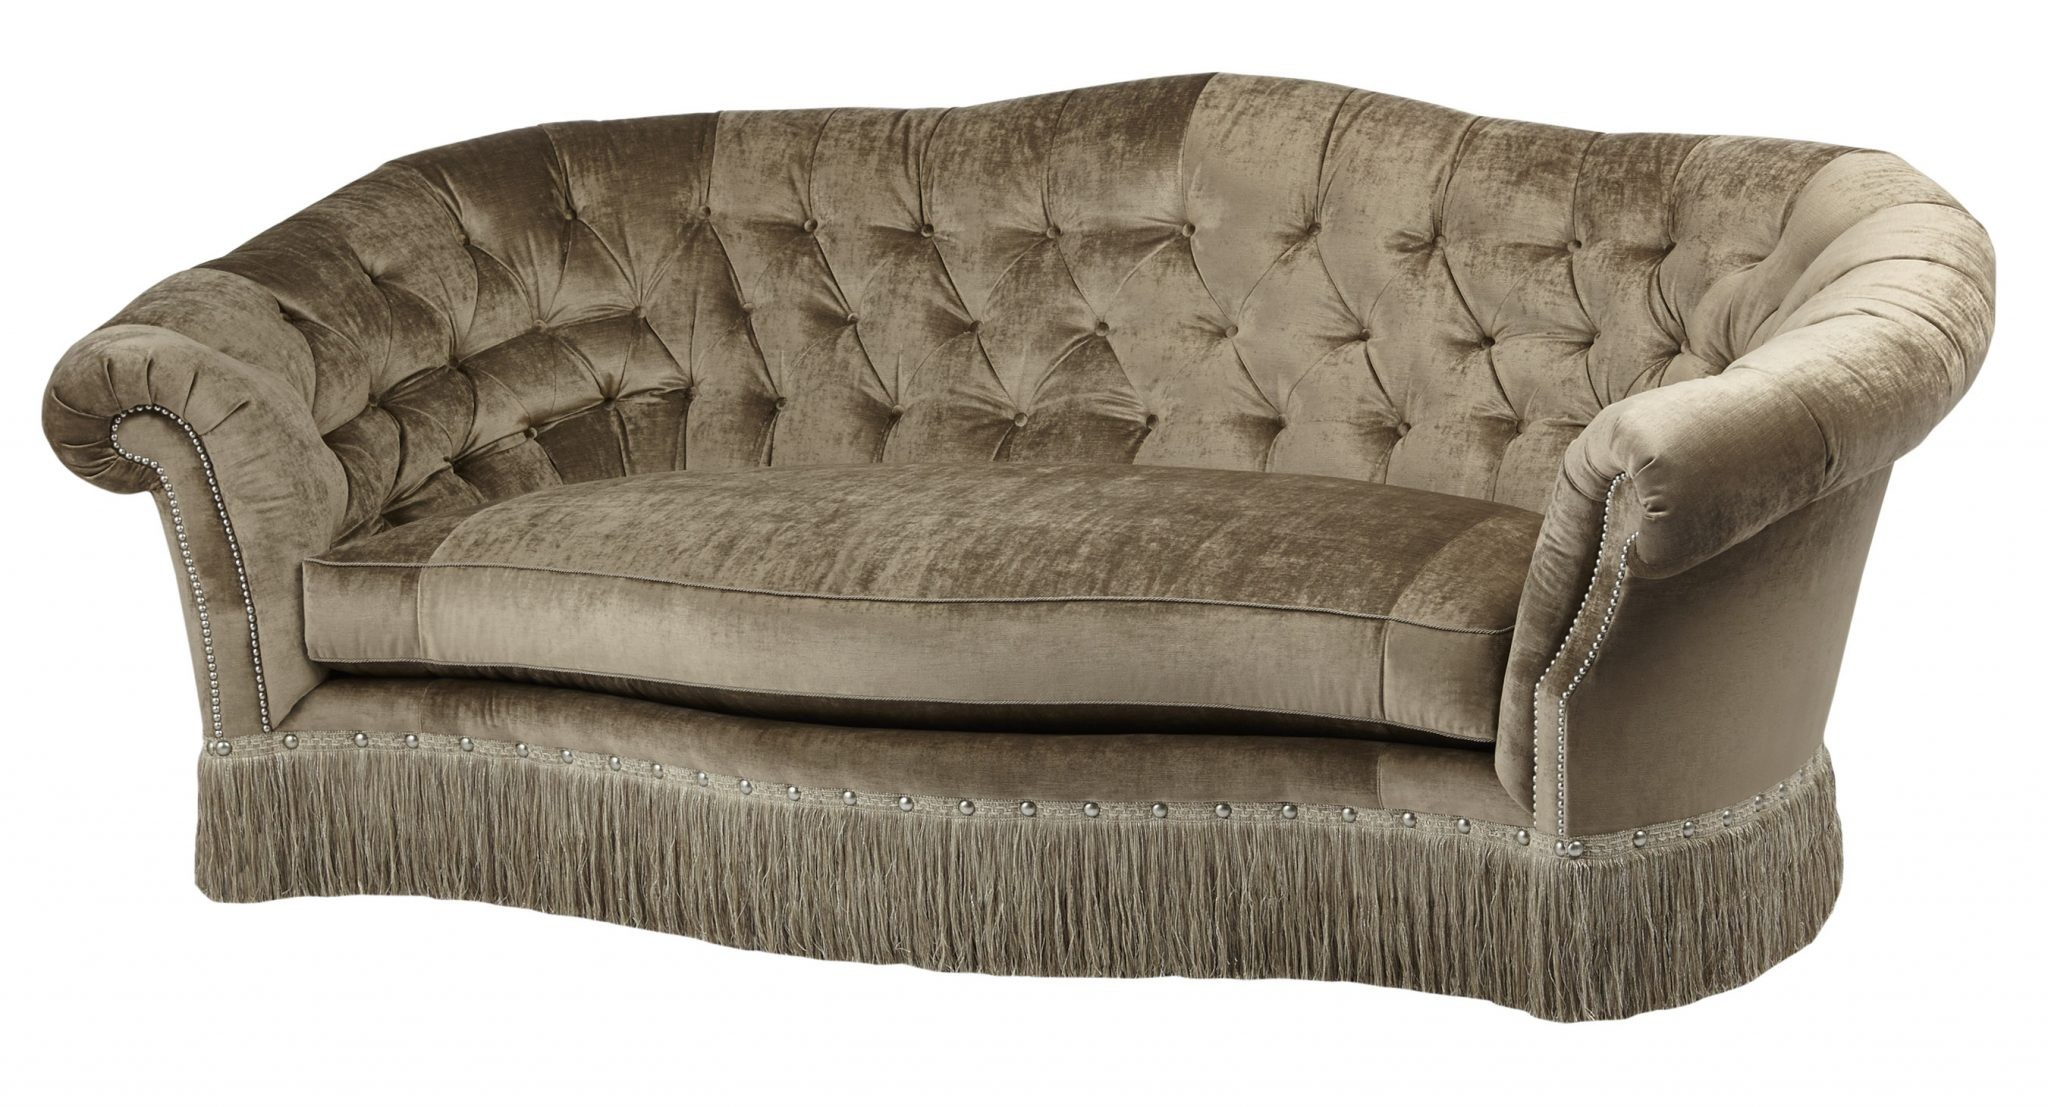 35 Luxury Sofa With Custom Details High Style Furniture The Best